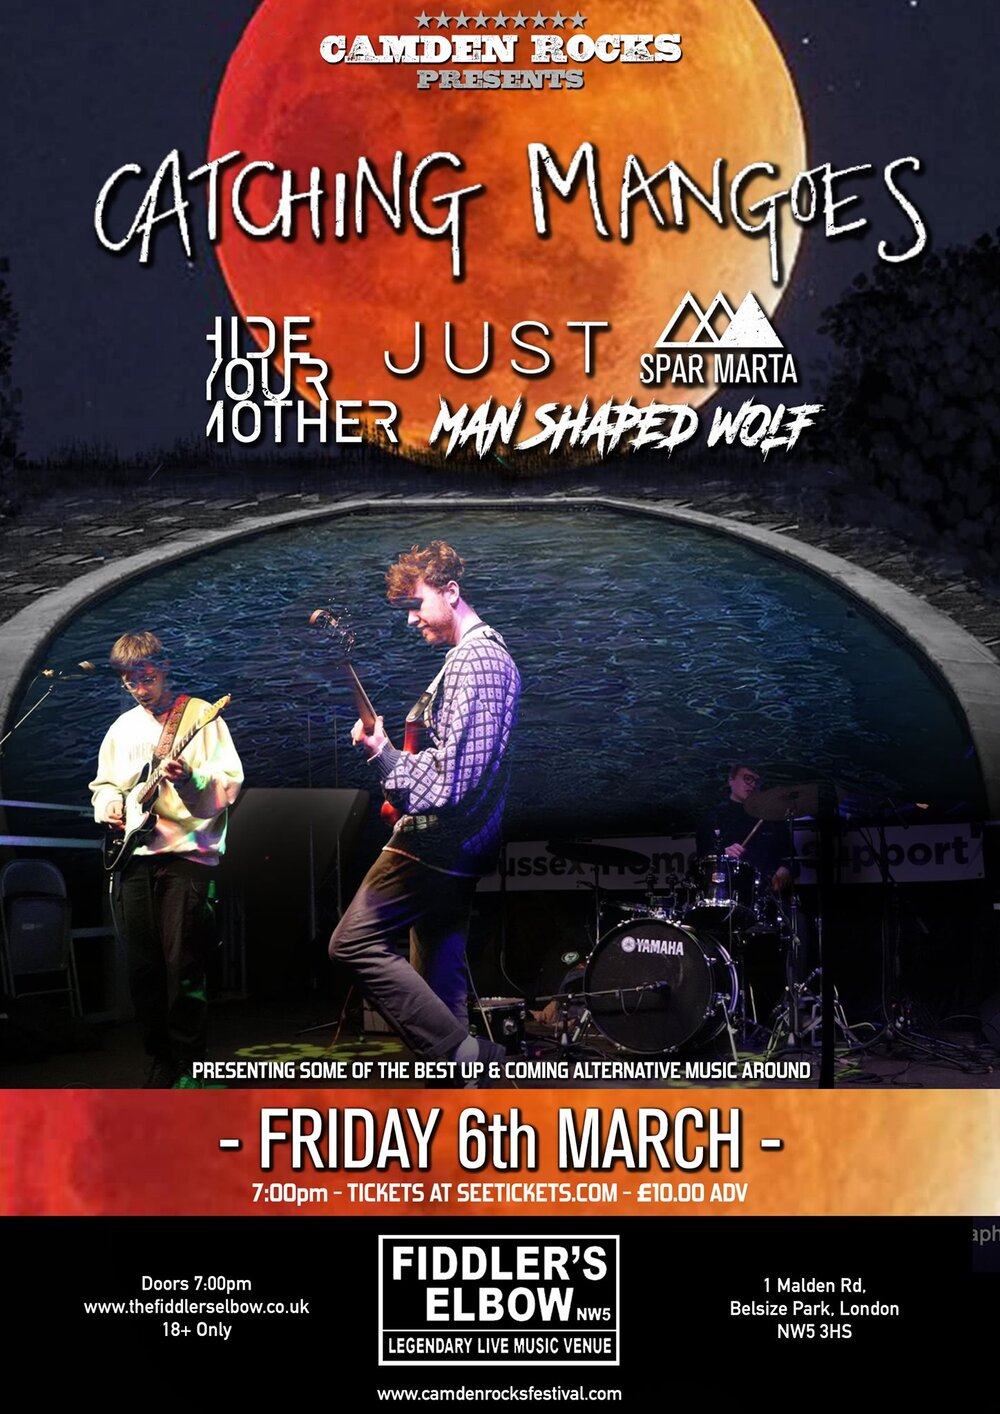 Camden Rocks presents Catching Mangoes & more at The Fiddler's Elbow promotional image